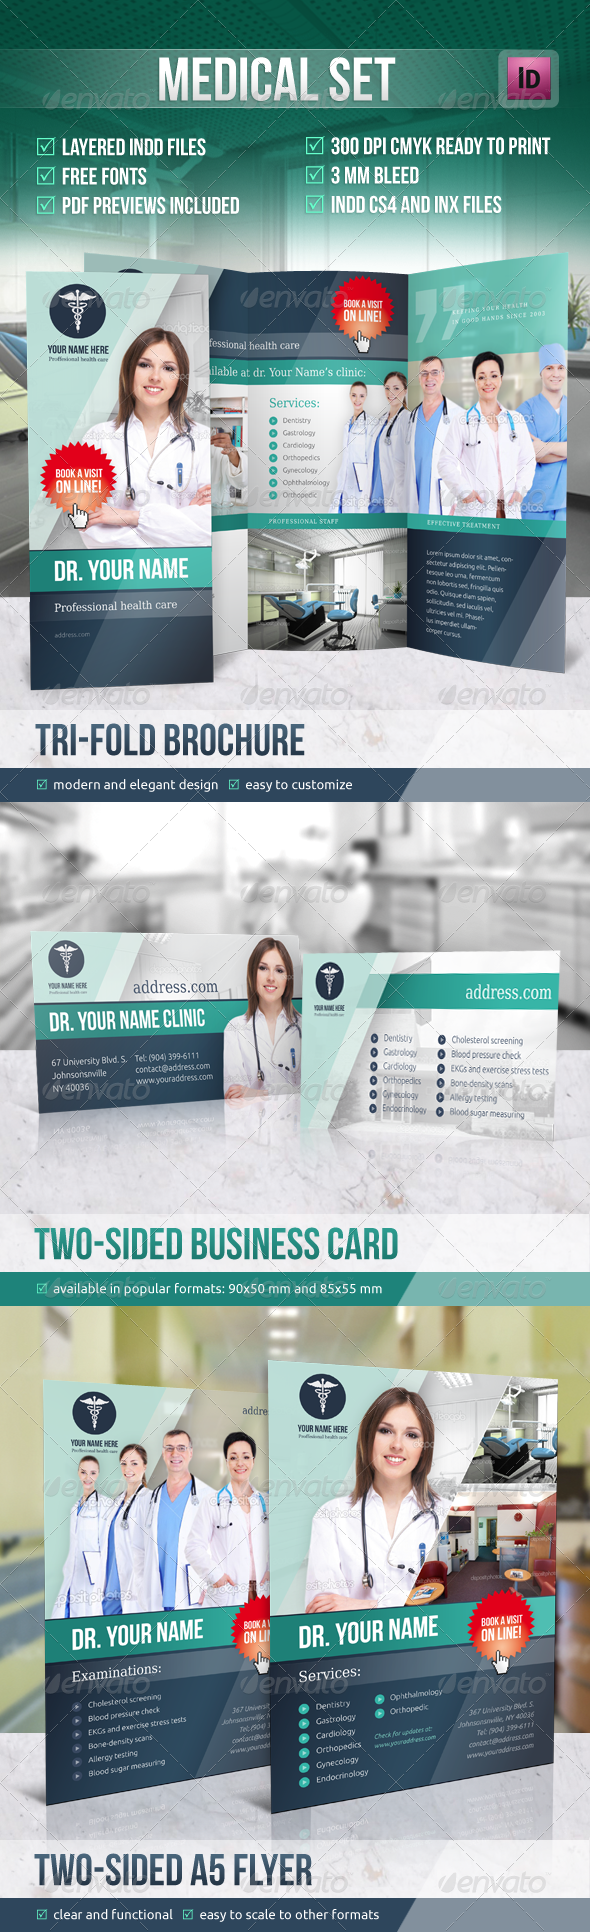 Medical Set Graphicriver The Package Contains A Basic Tri Fold Brochure Flyer A5 Custom And Business Card For Company Text Graphics Are Put In